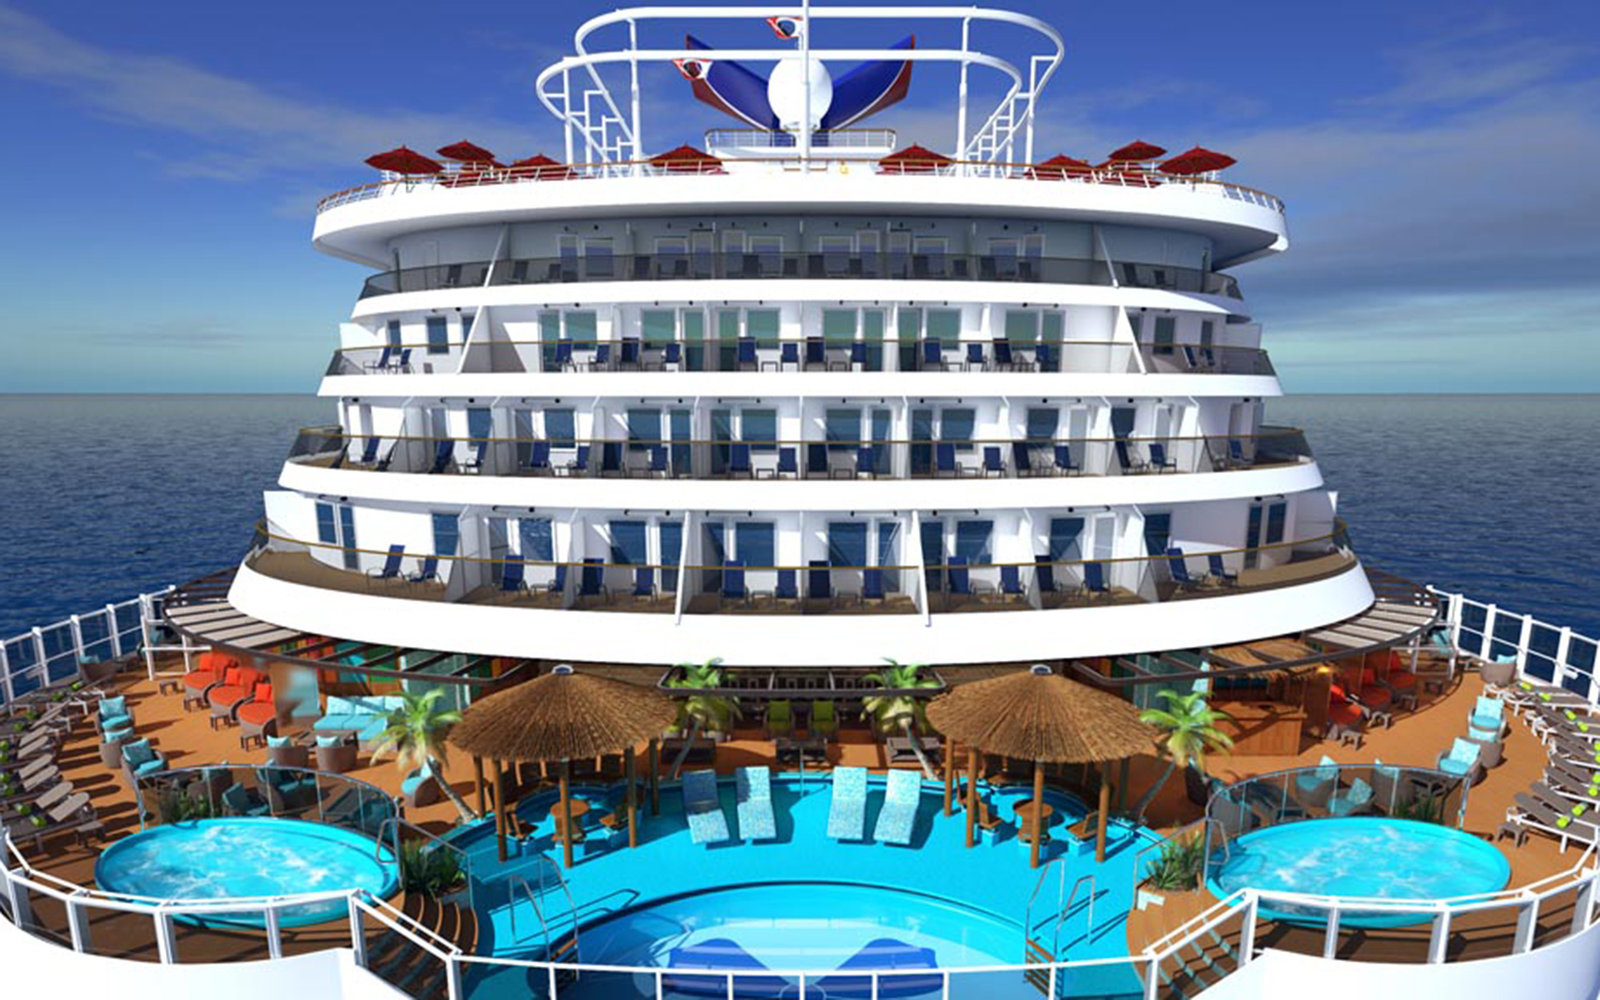 Entertaining Best cruise line for adults right!